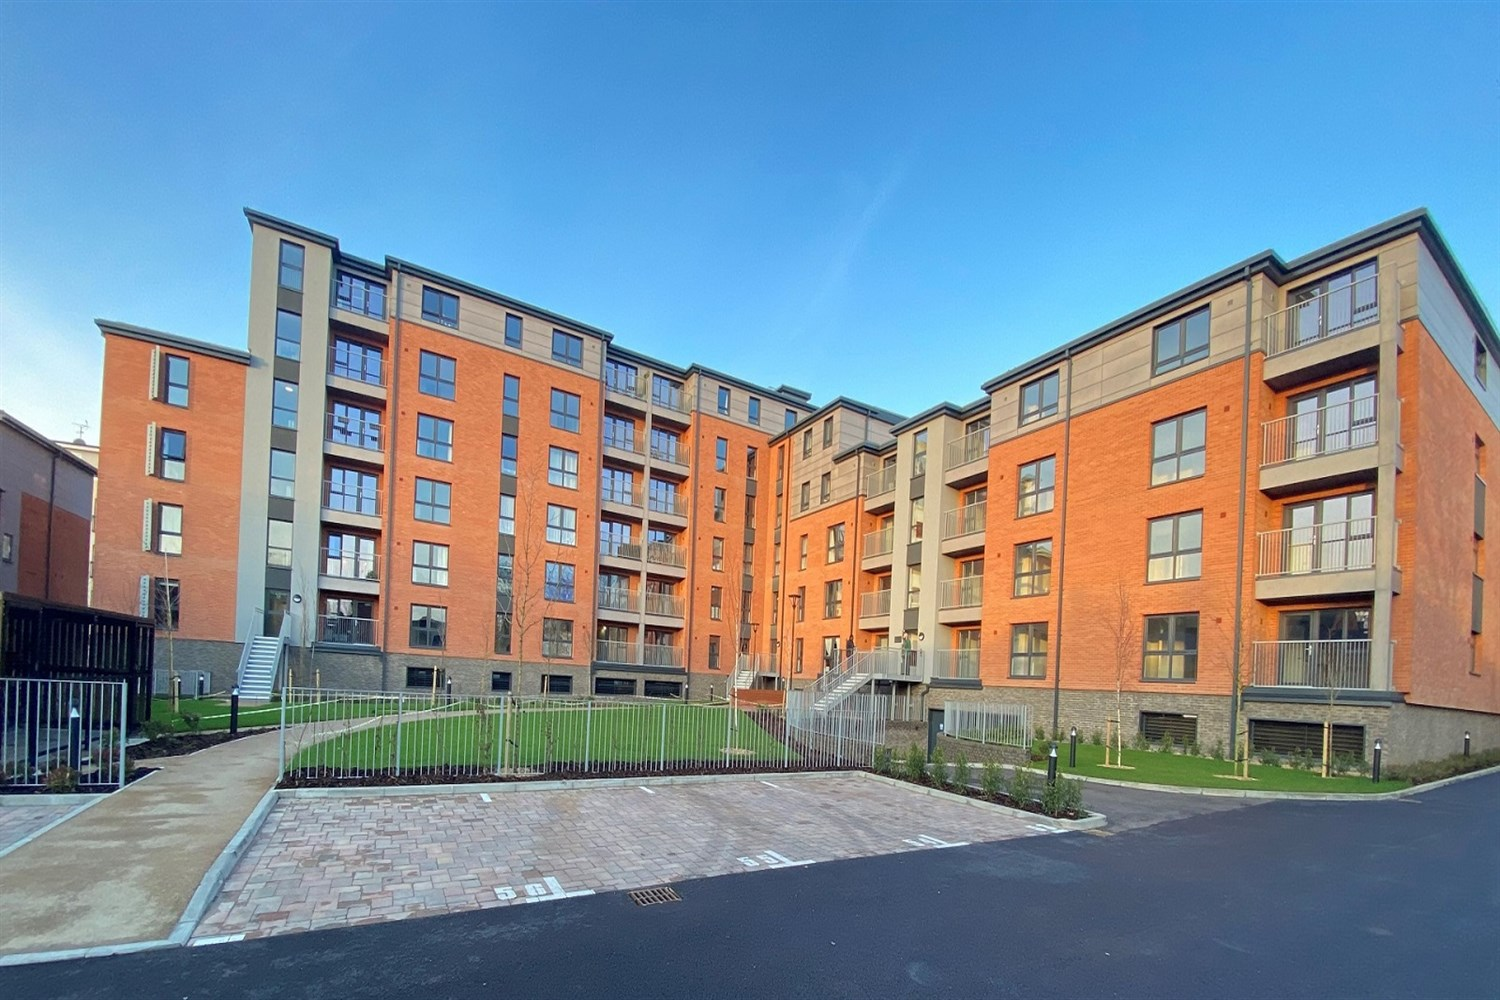 2 bed apartments at Sterling Square - Silver Street, Reading RG1 2SE